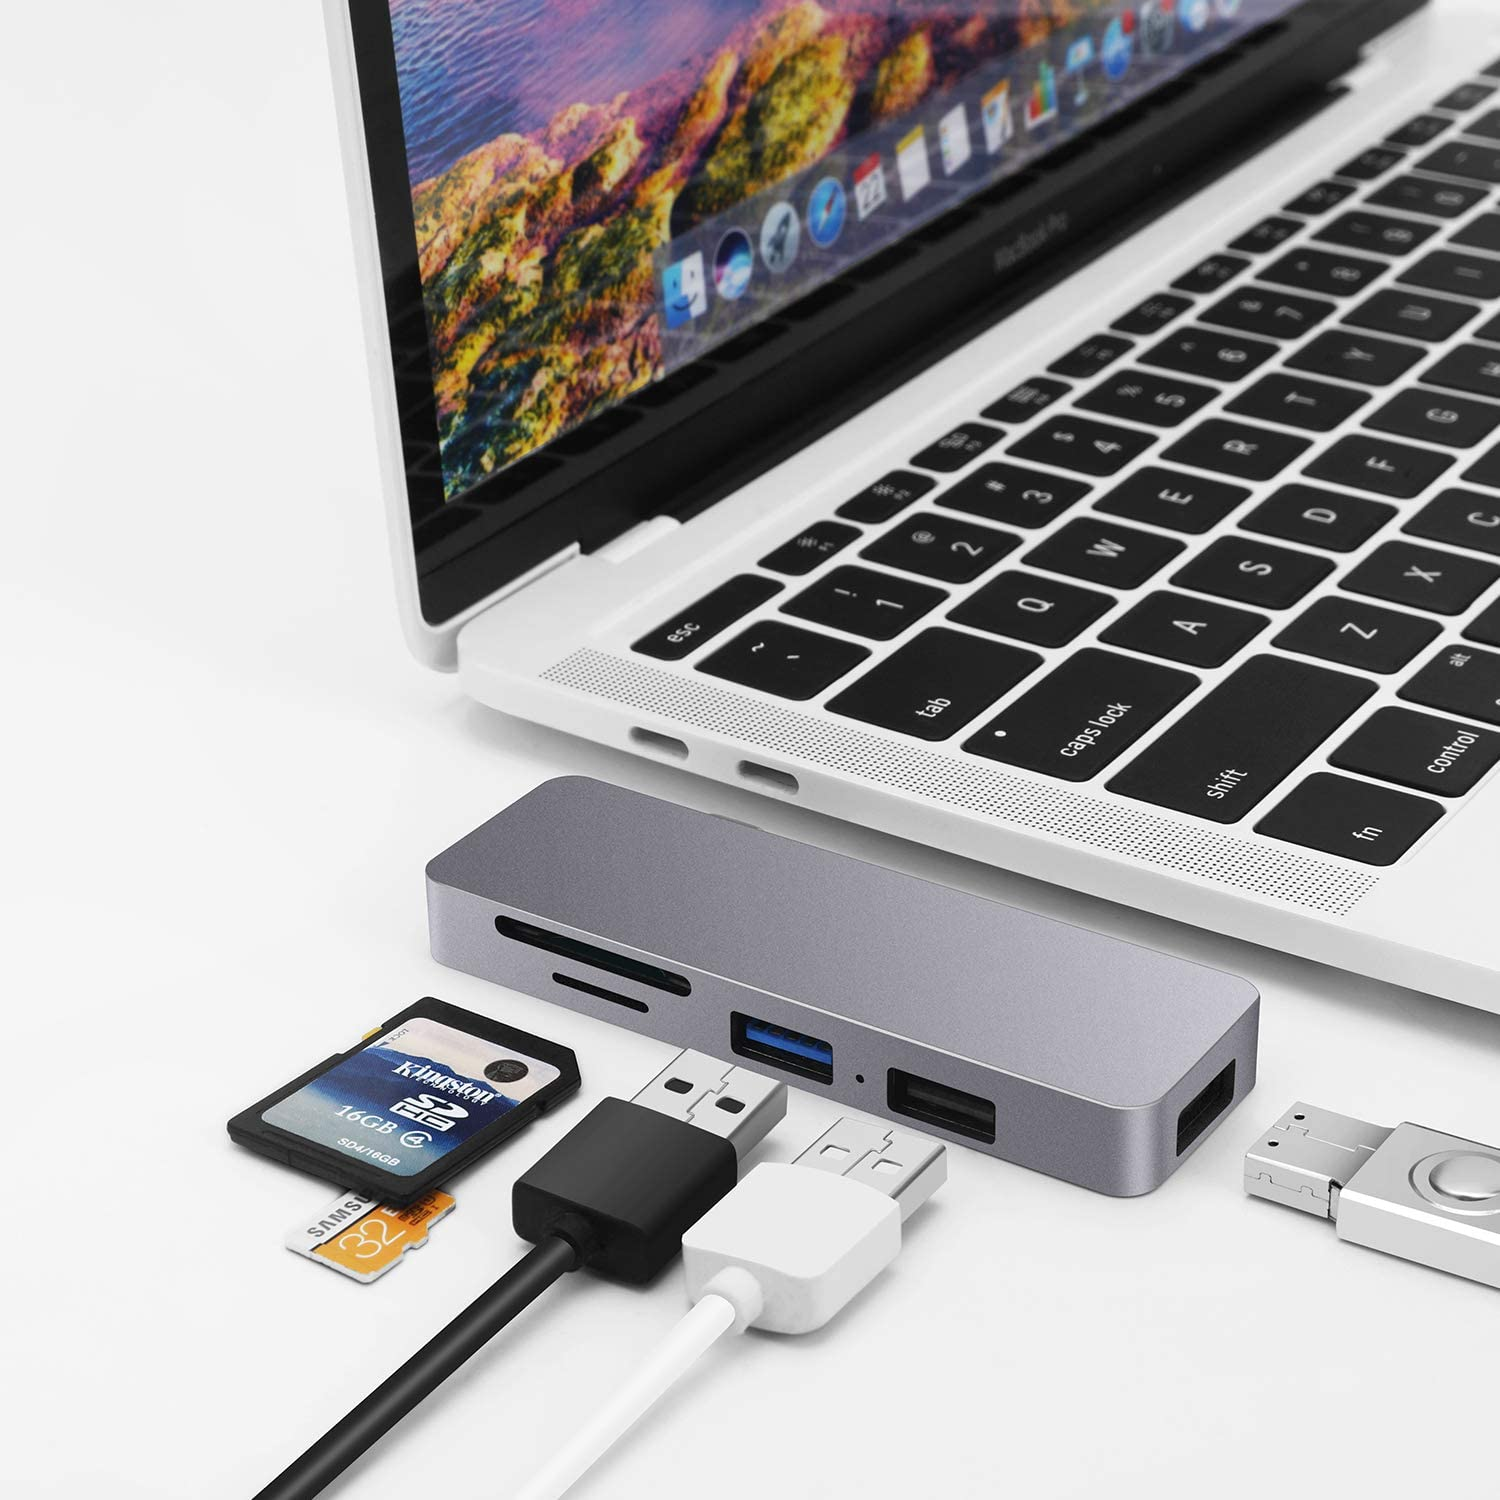 USB C Hub for MacBook,6-in-1 Type C Hub Adapter for Laptop with USB 3.0/2.0, 87W Small USB Hub for Laptop Powered Delivery, TF/SD Card Reader Compatible for MacBook Pro, XPS More Type C Devices